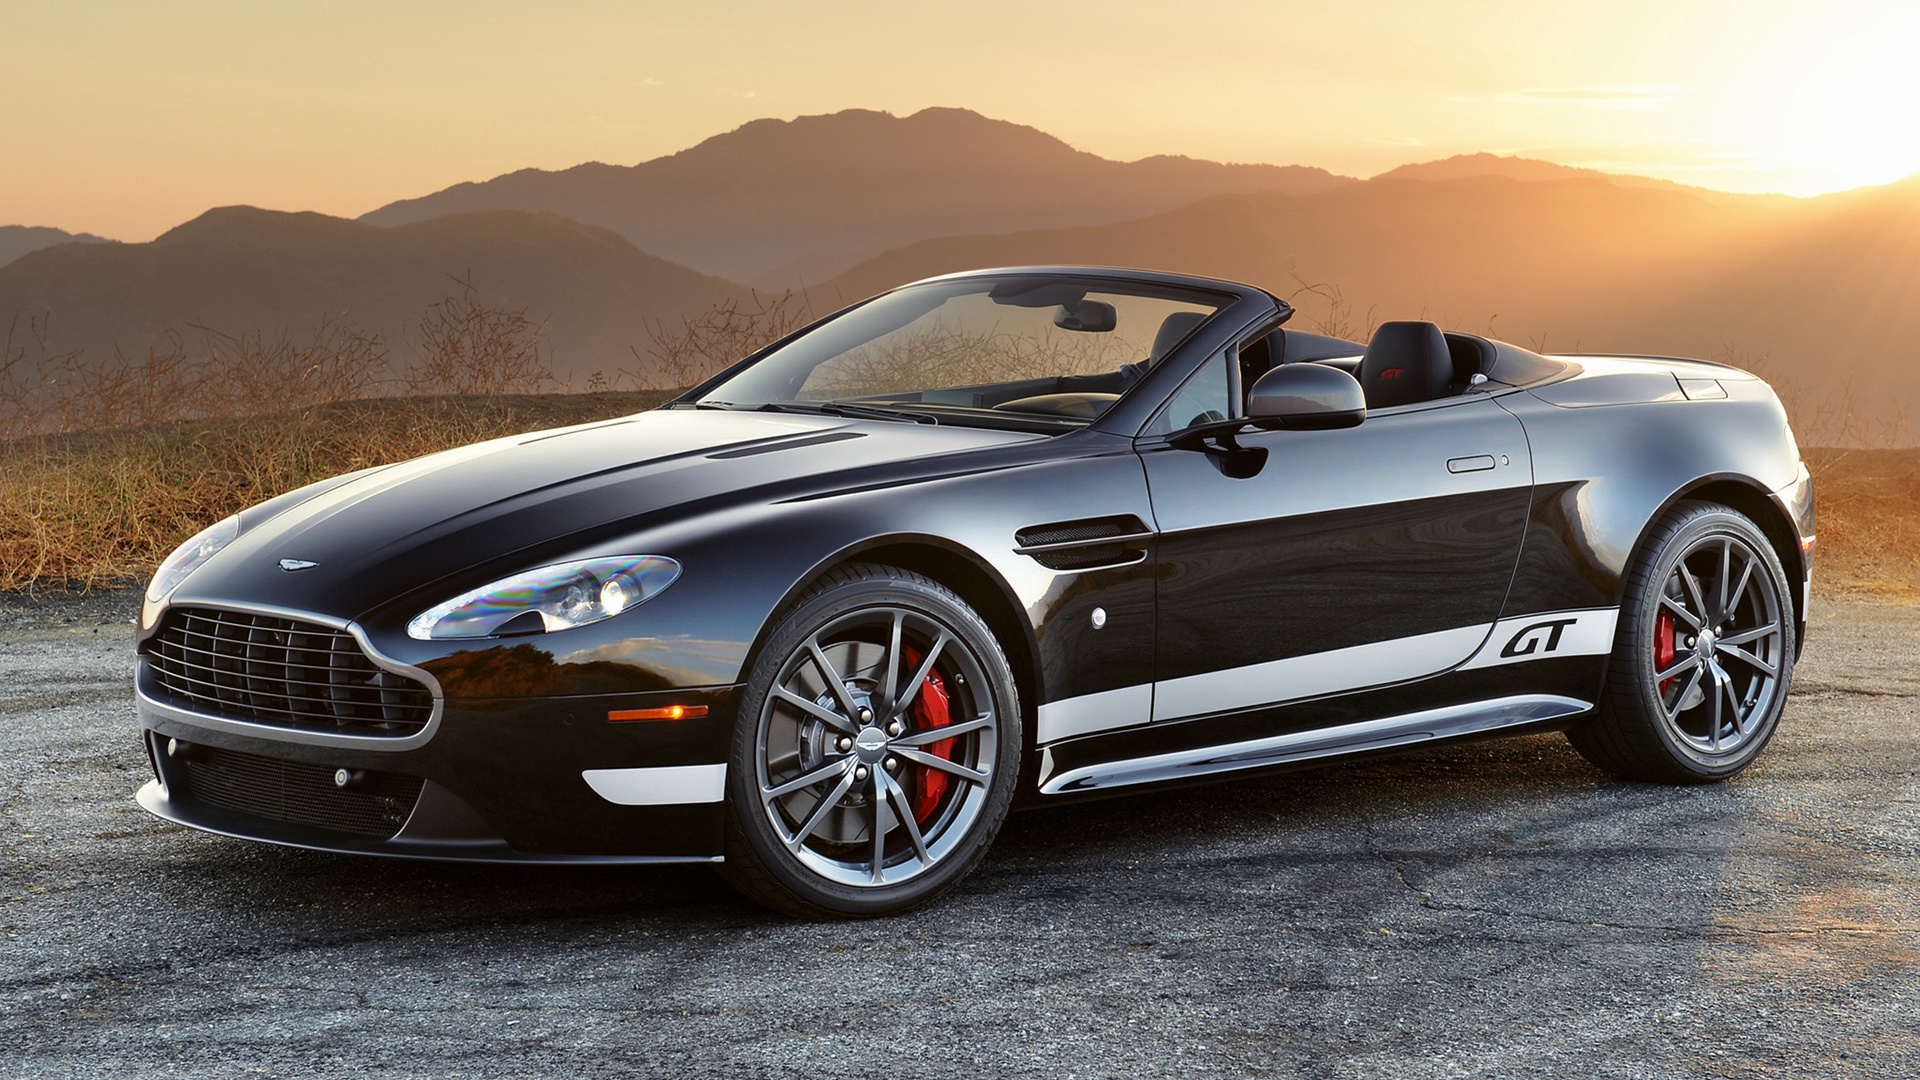 aston martin v8 vantage gt roadster (2014) us wallpapers and hd